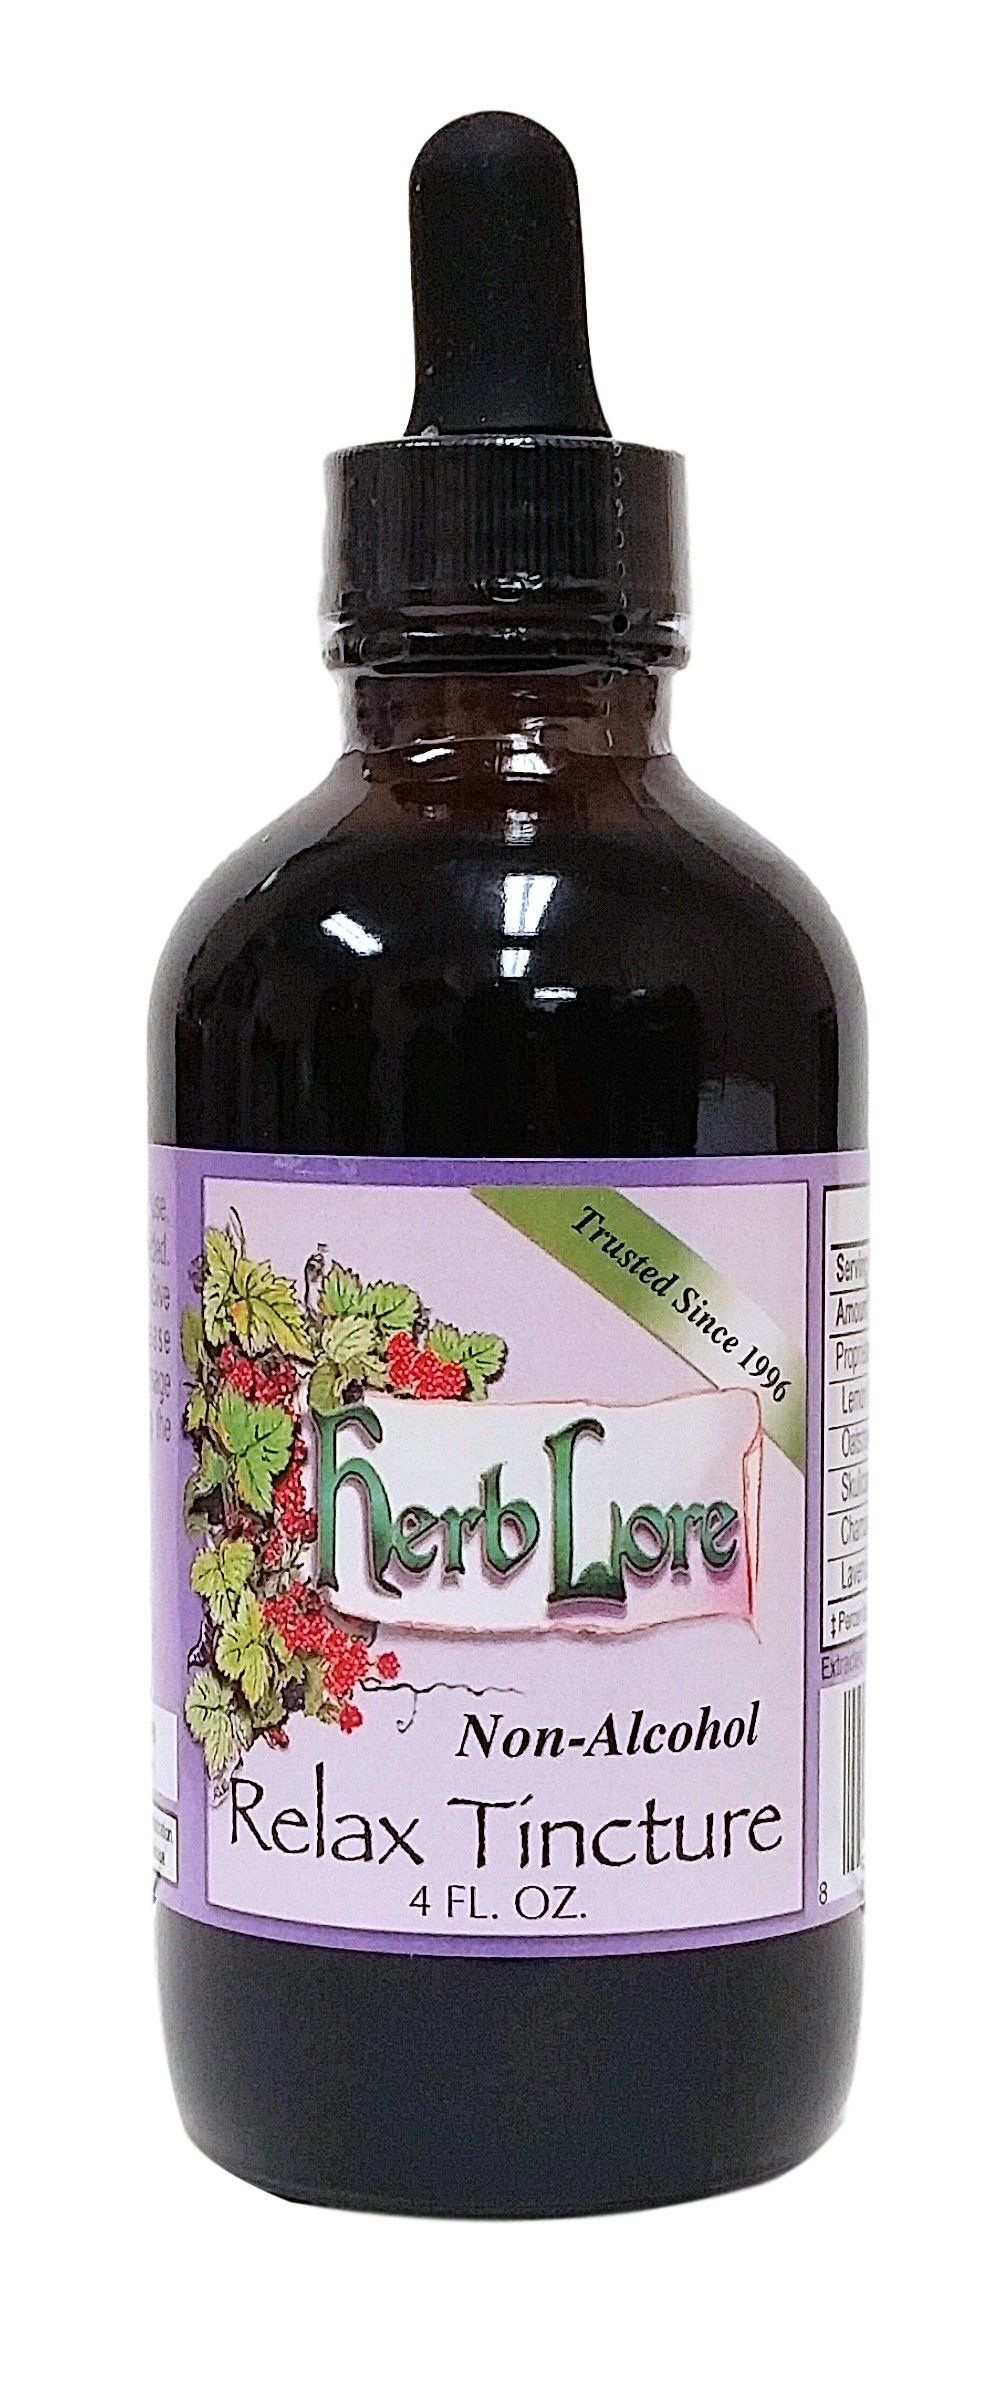 Herb Lore Organic Herbal Relax Tincture - 4 oz - Non-Alcohol - Safe Stress Relief for Children and Pregnant Women -- Awesome products selected by Anna Churchill